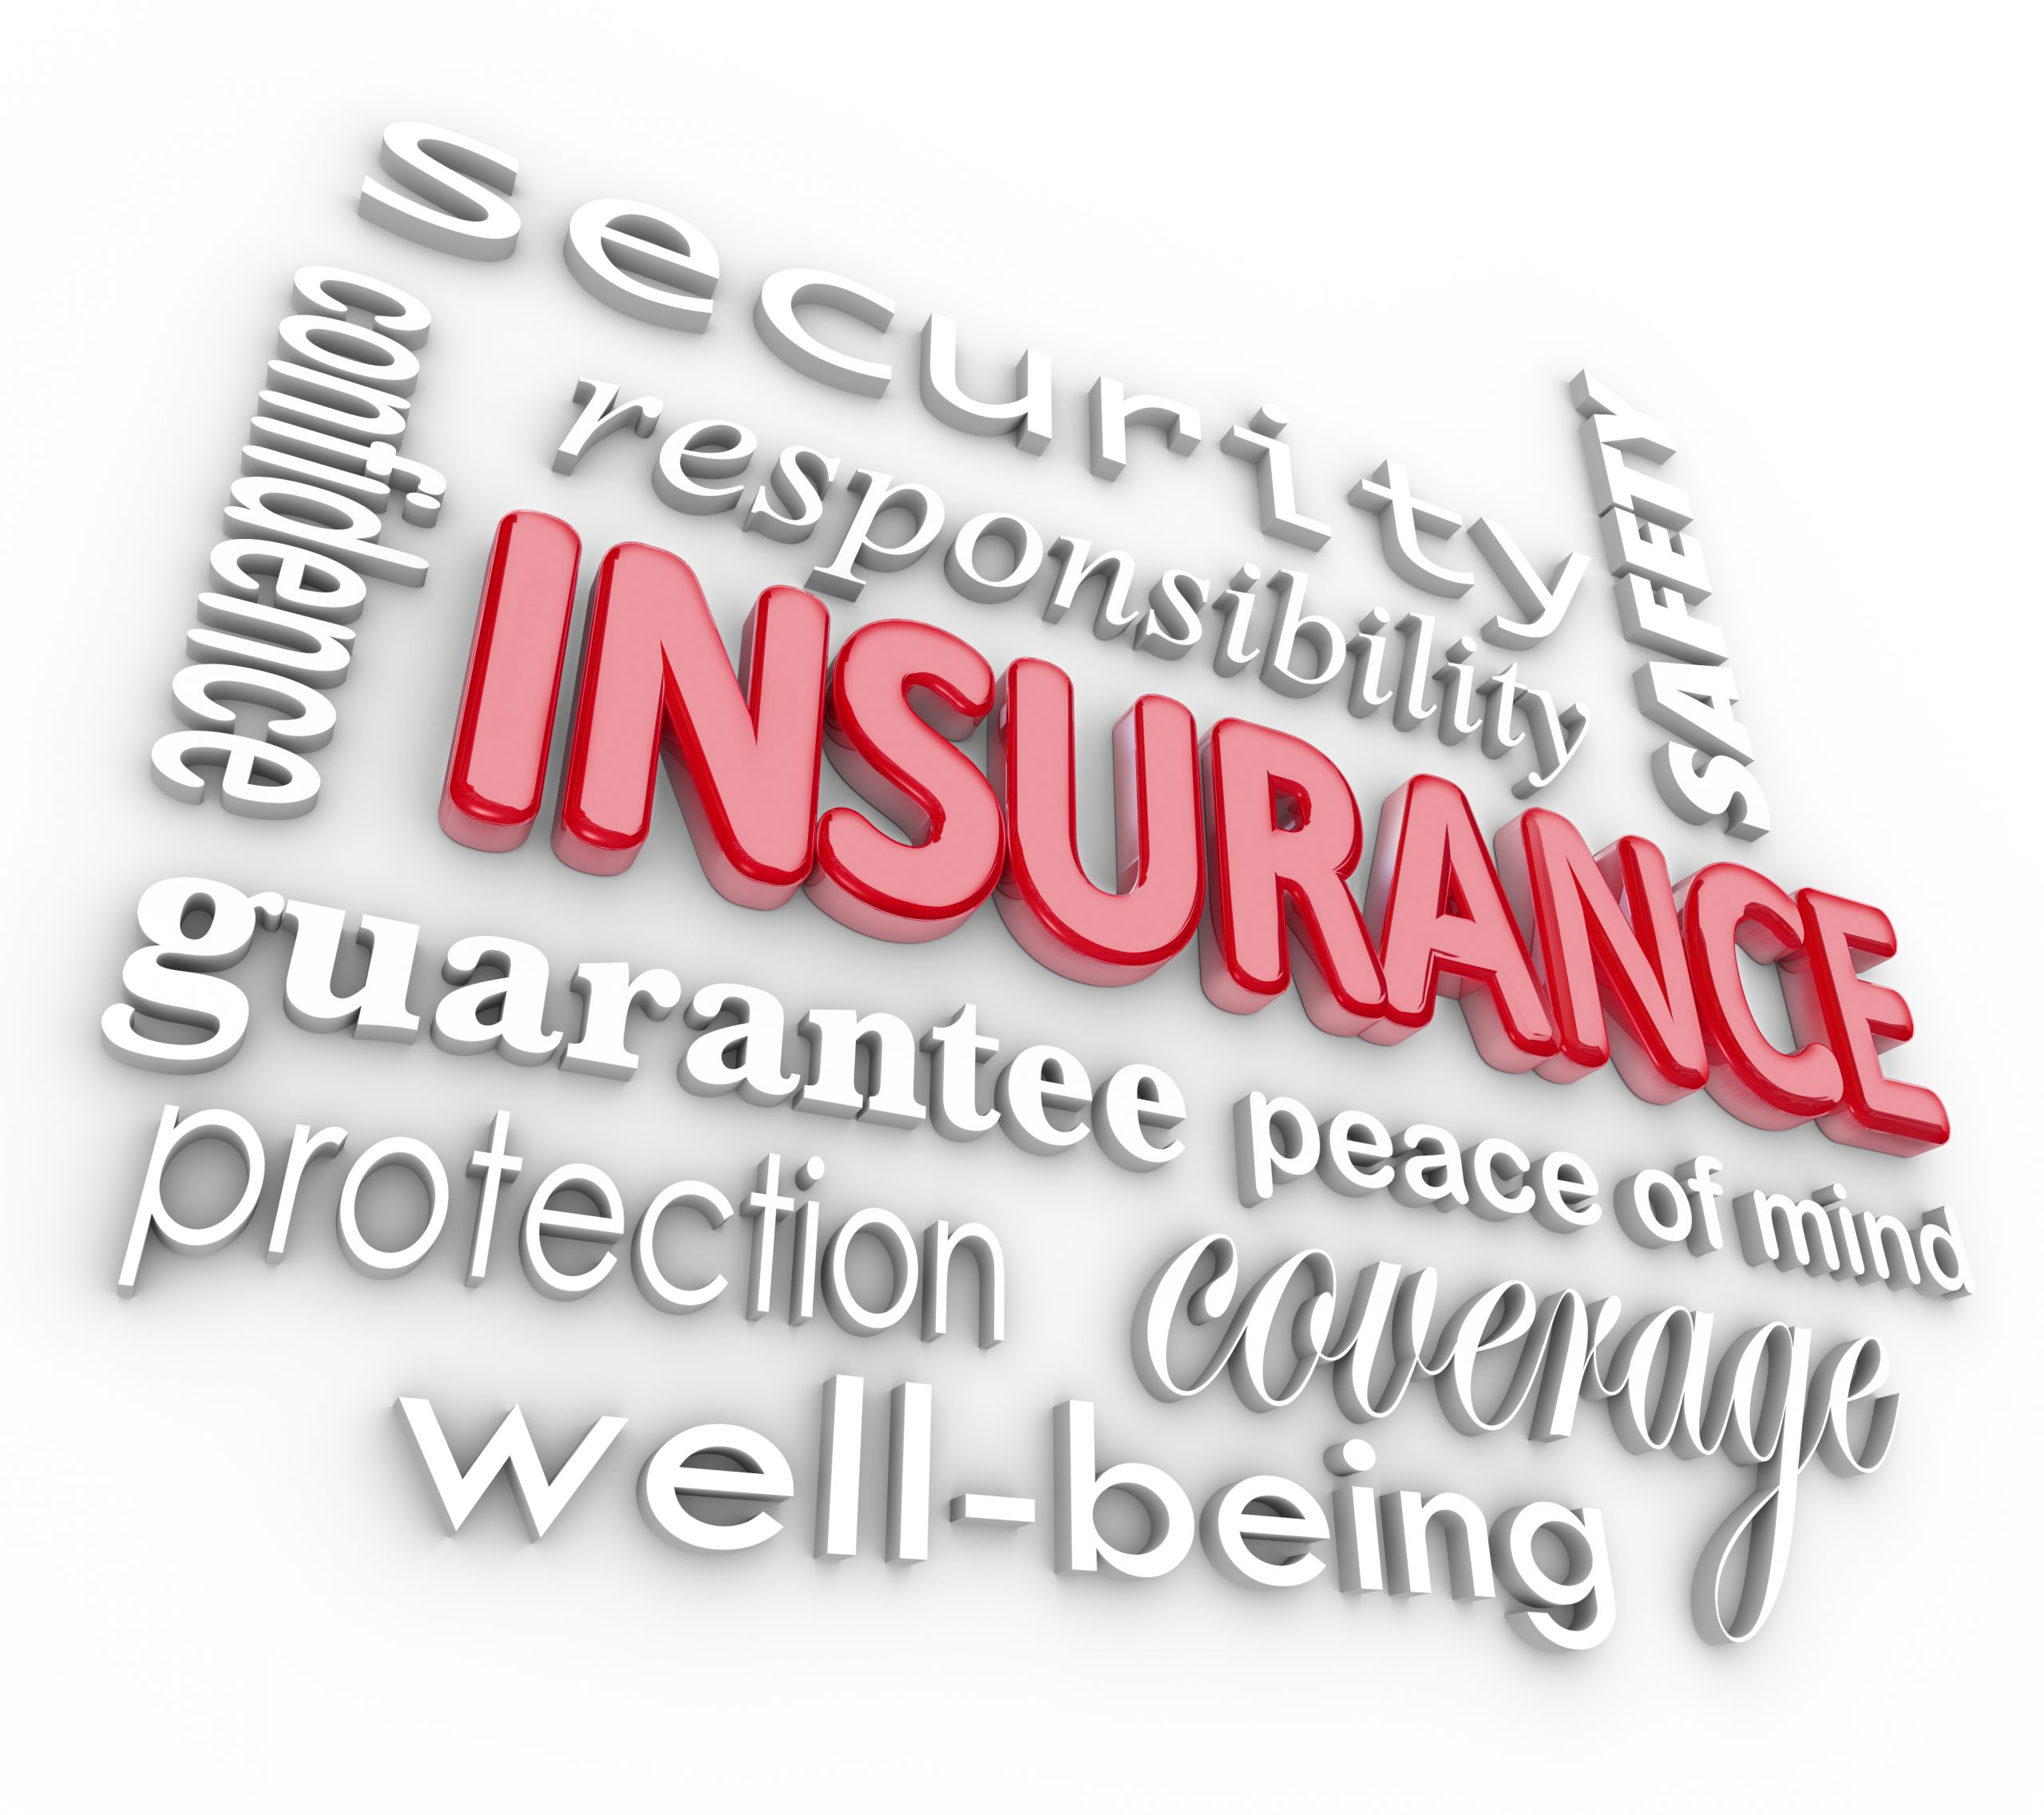 Insurance graphic showing concept of many related words such as safety, security, confidence, guarantee, peace of mind, well-being, coverage and protection